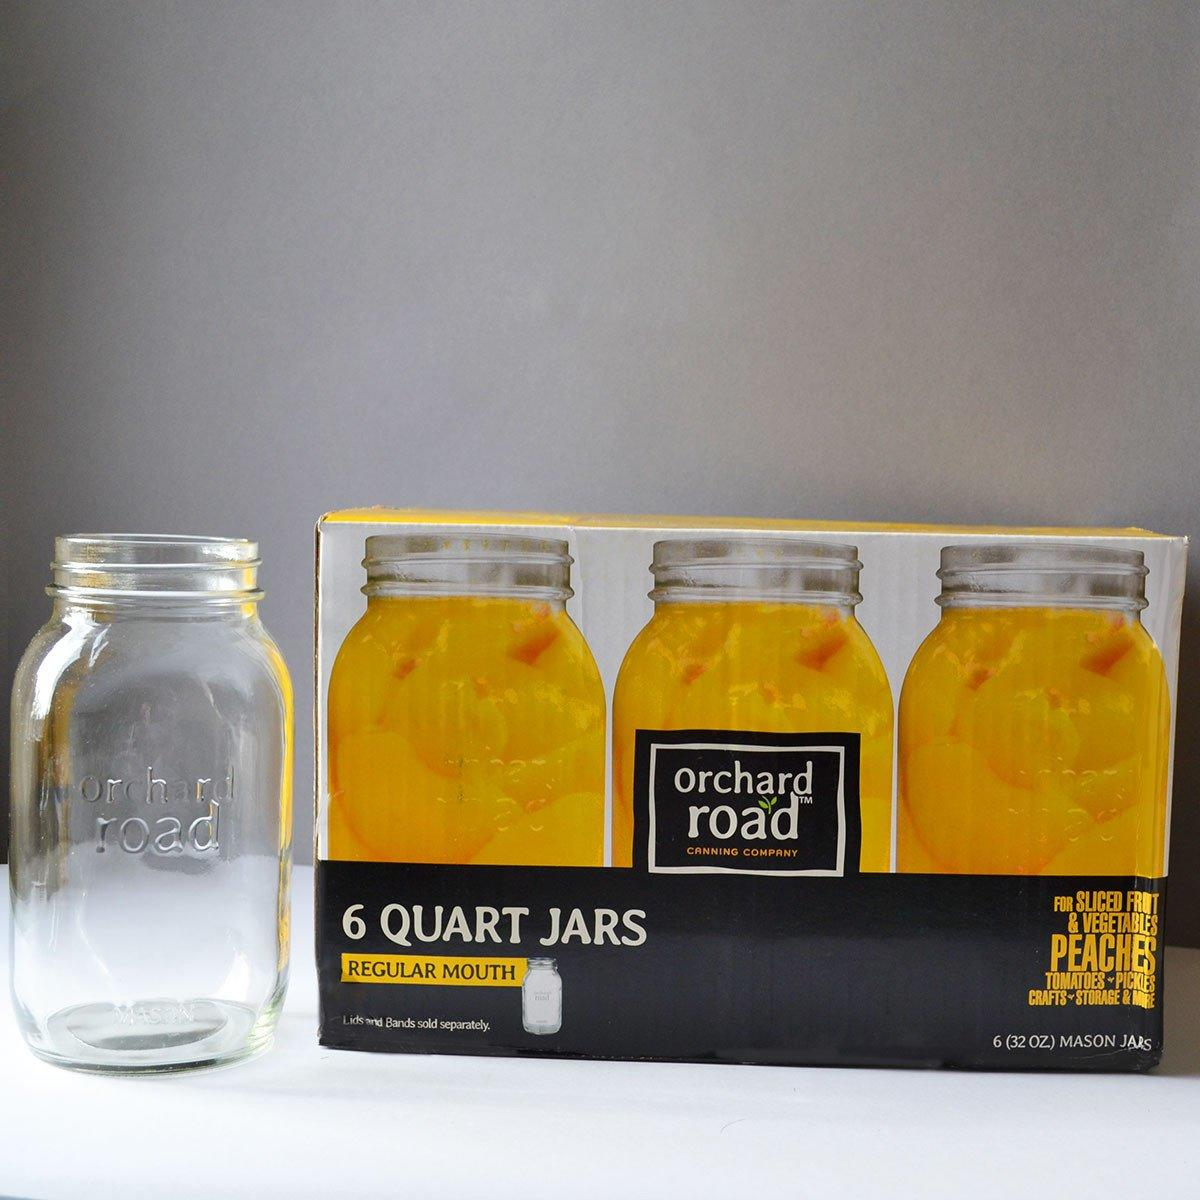 Orchard Road Canning Jar 32oz Quart | Uberstar